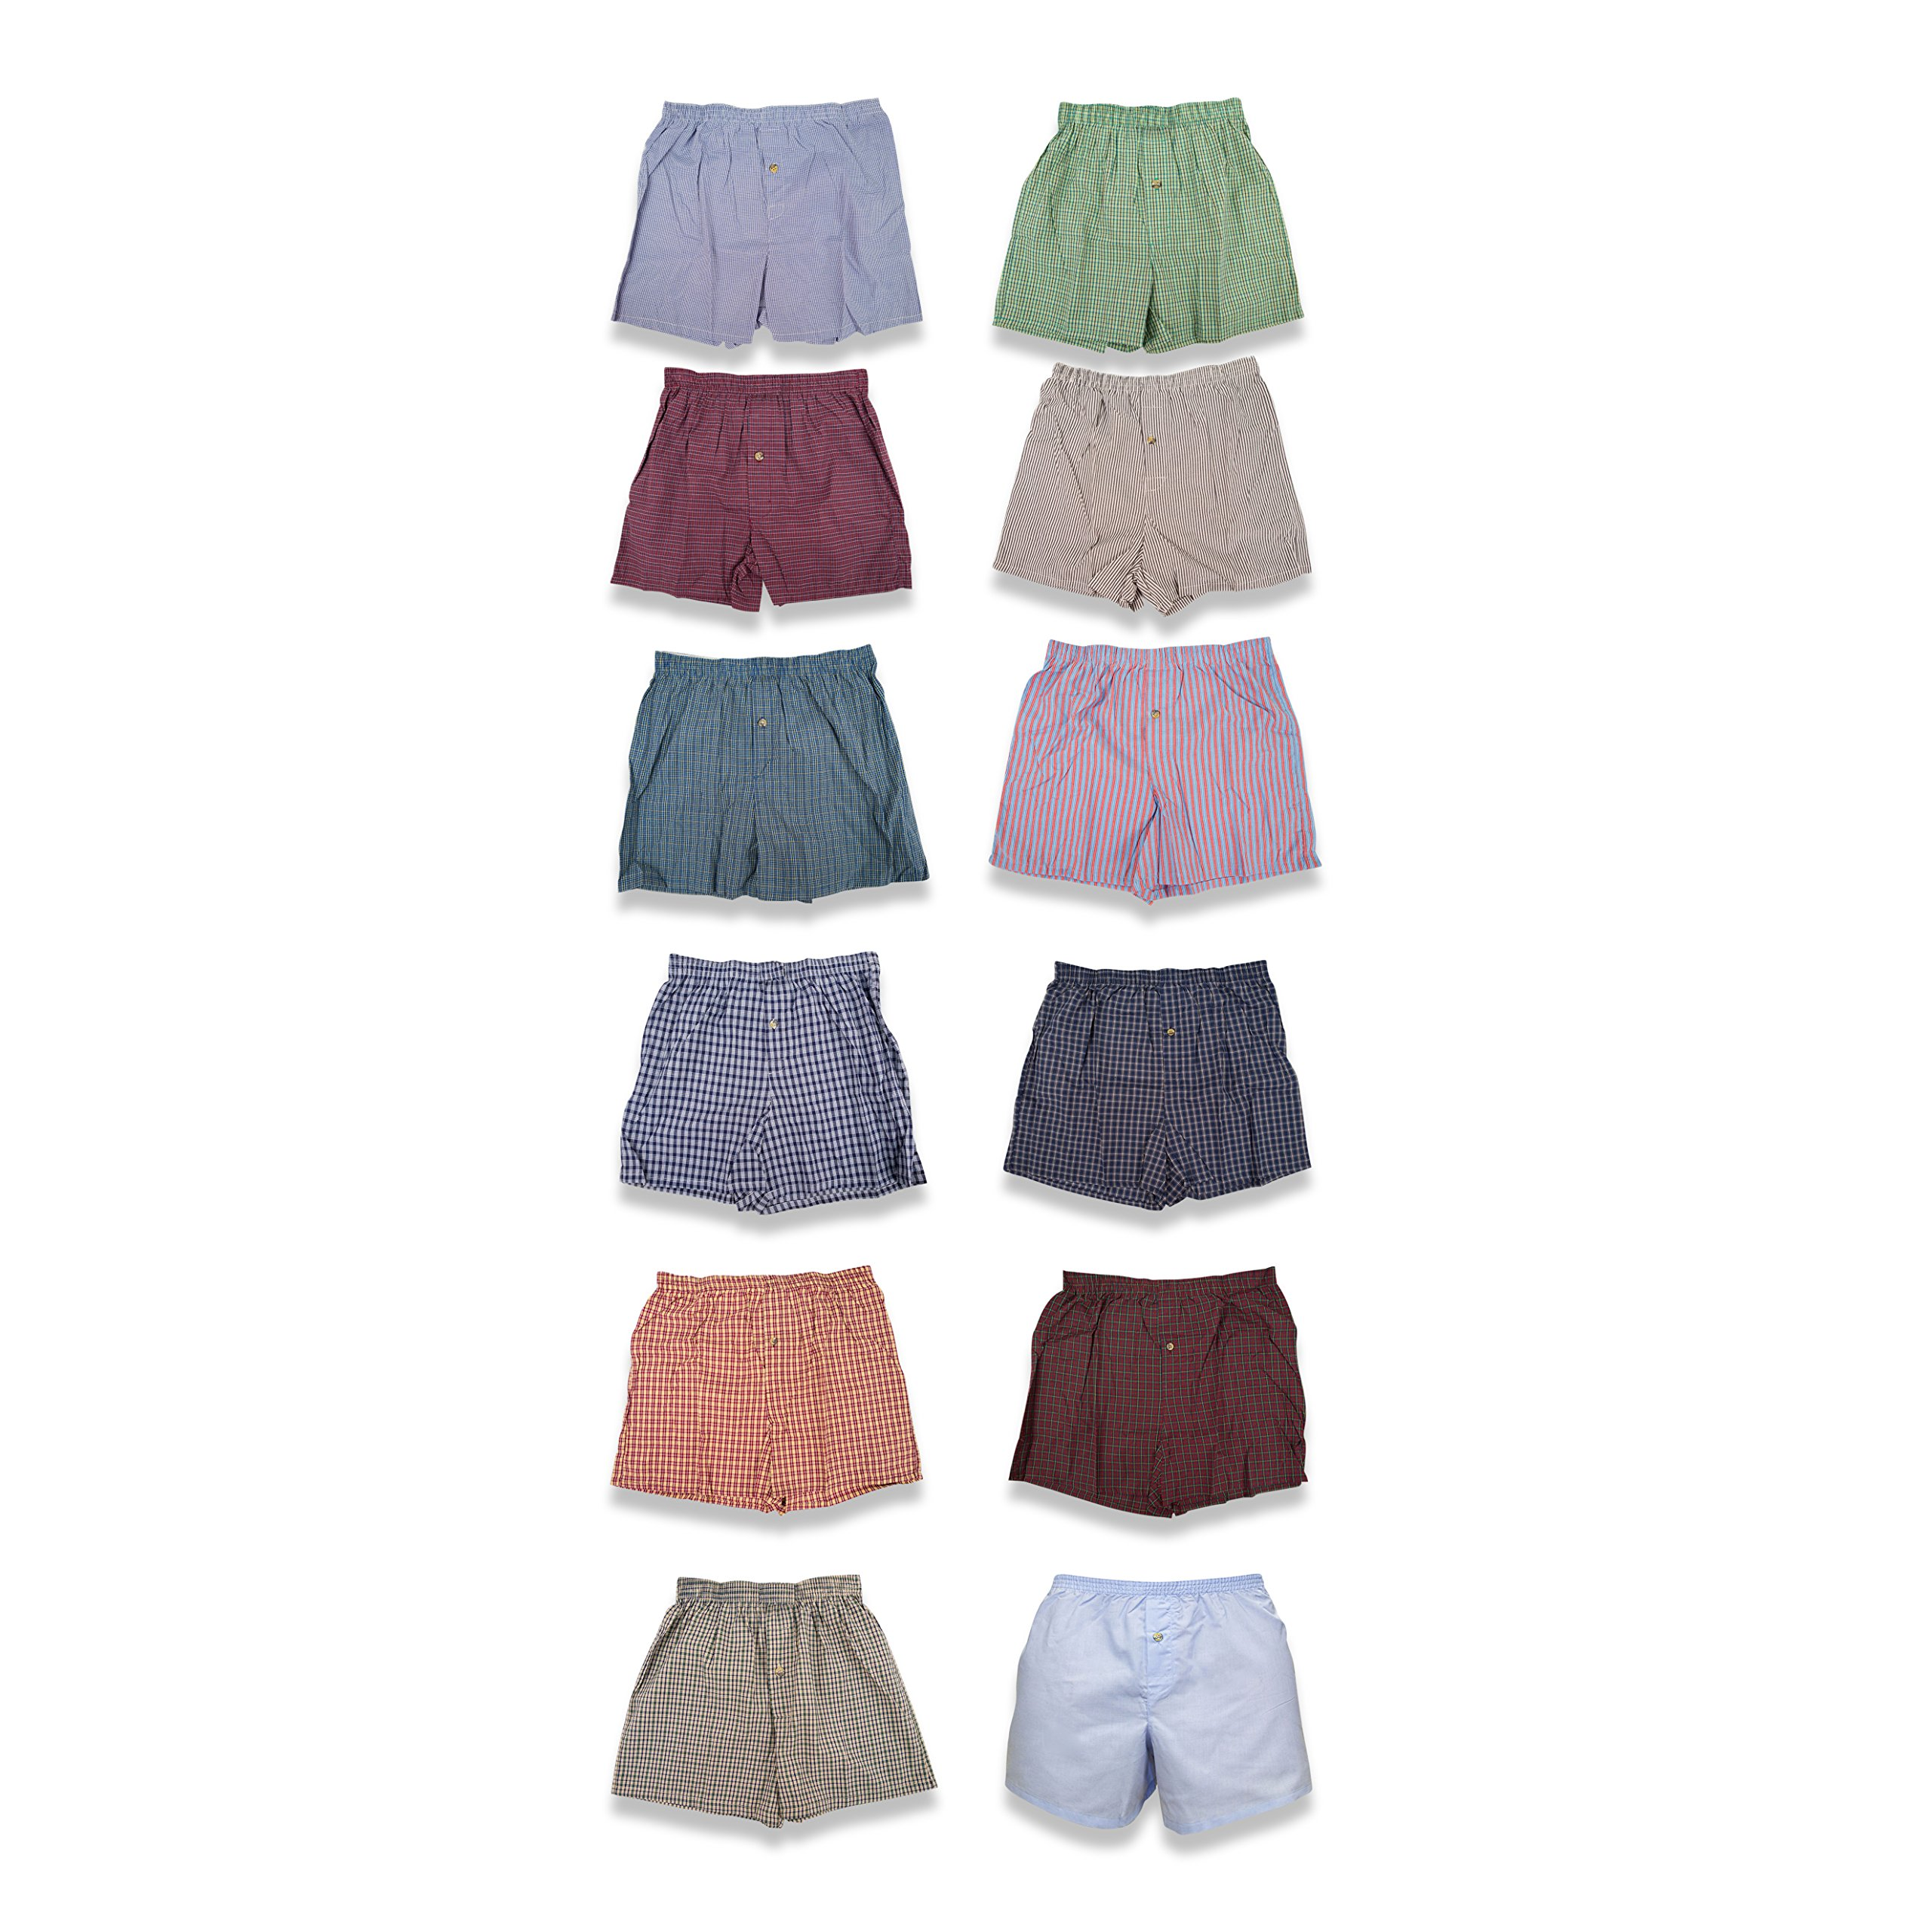 Classic Basics Men's 12 Pack Woven Boxers Sleep Shorts Travel Pack Collection (X-Large ( 36 -38 ), 12 Pack - Assorted Plaids & Patterns Colors Vary)